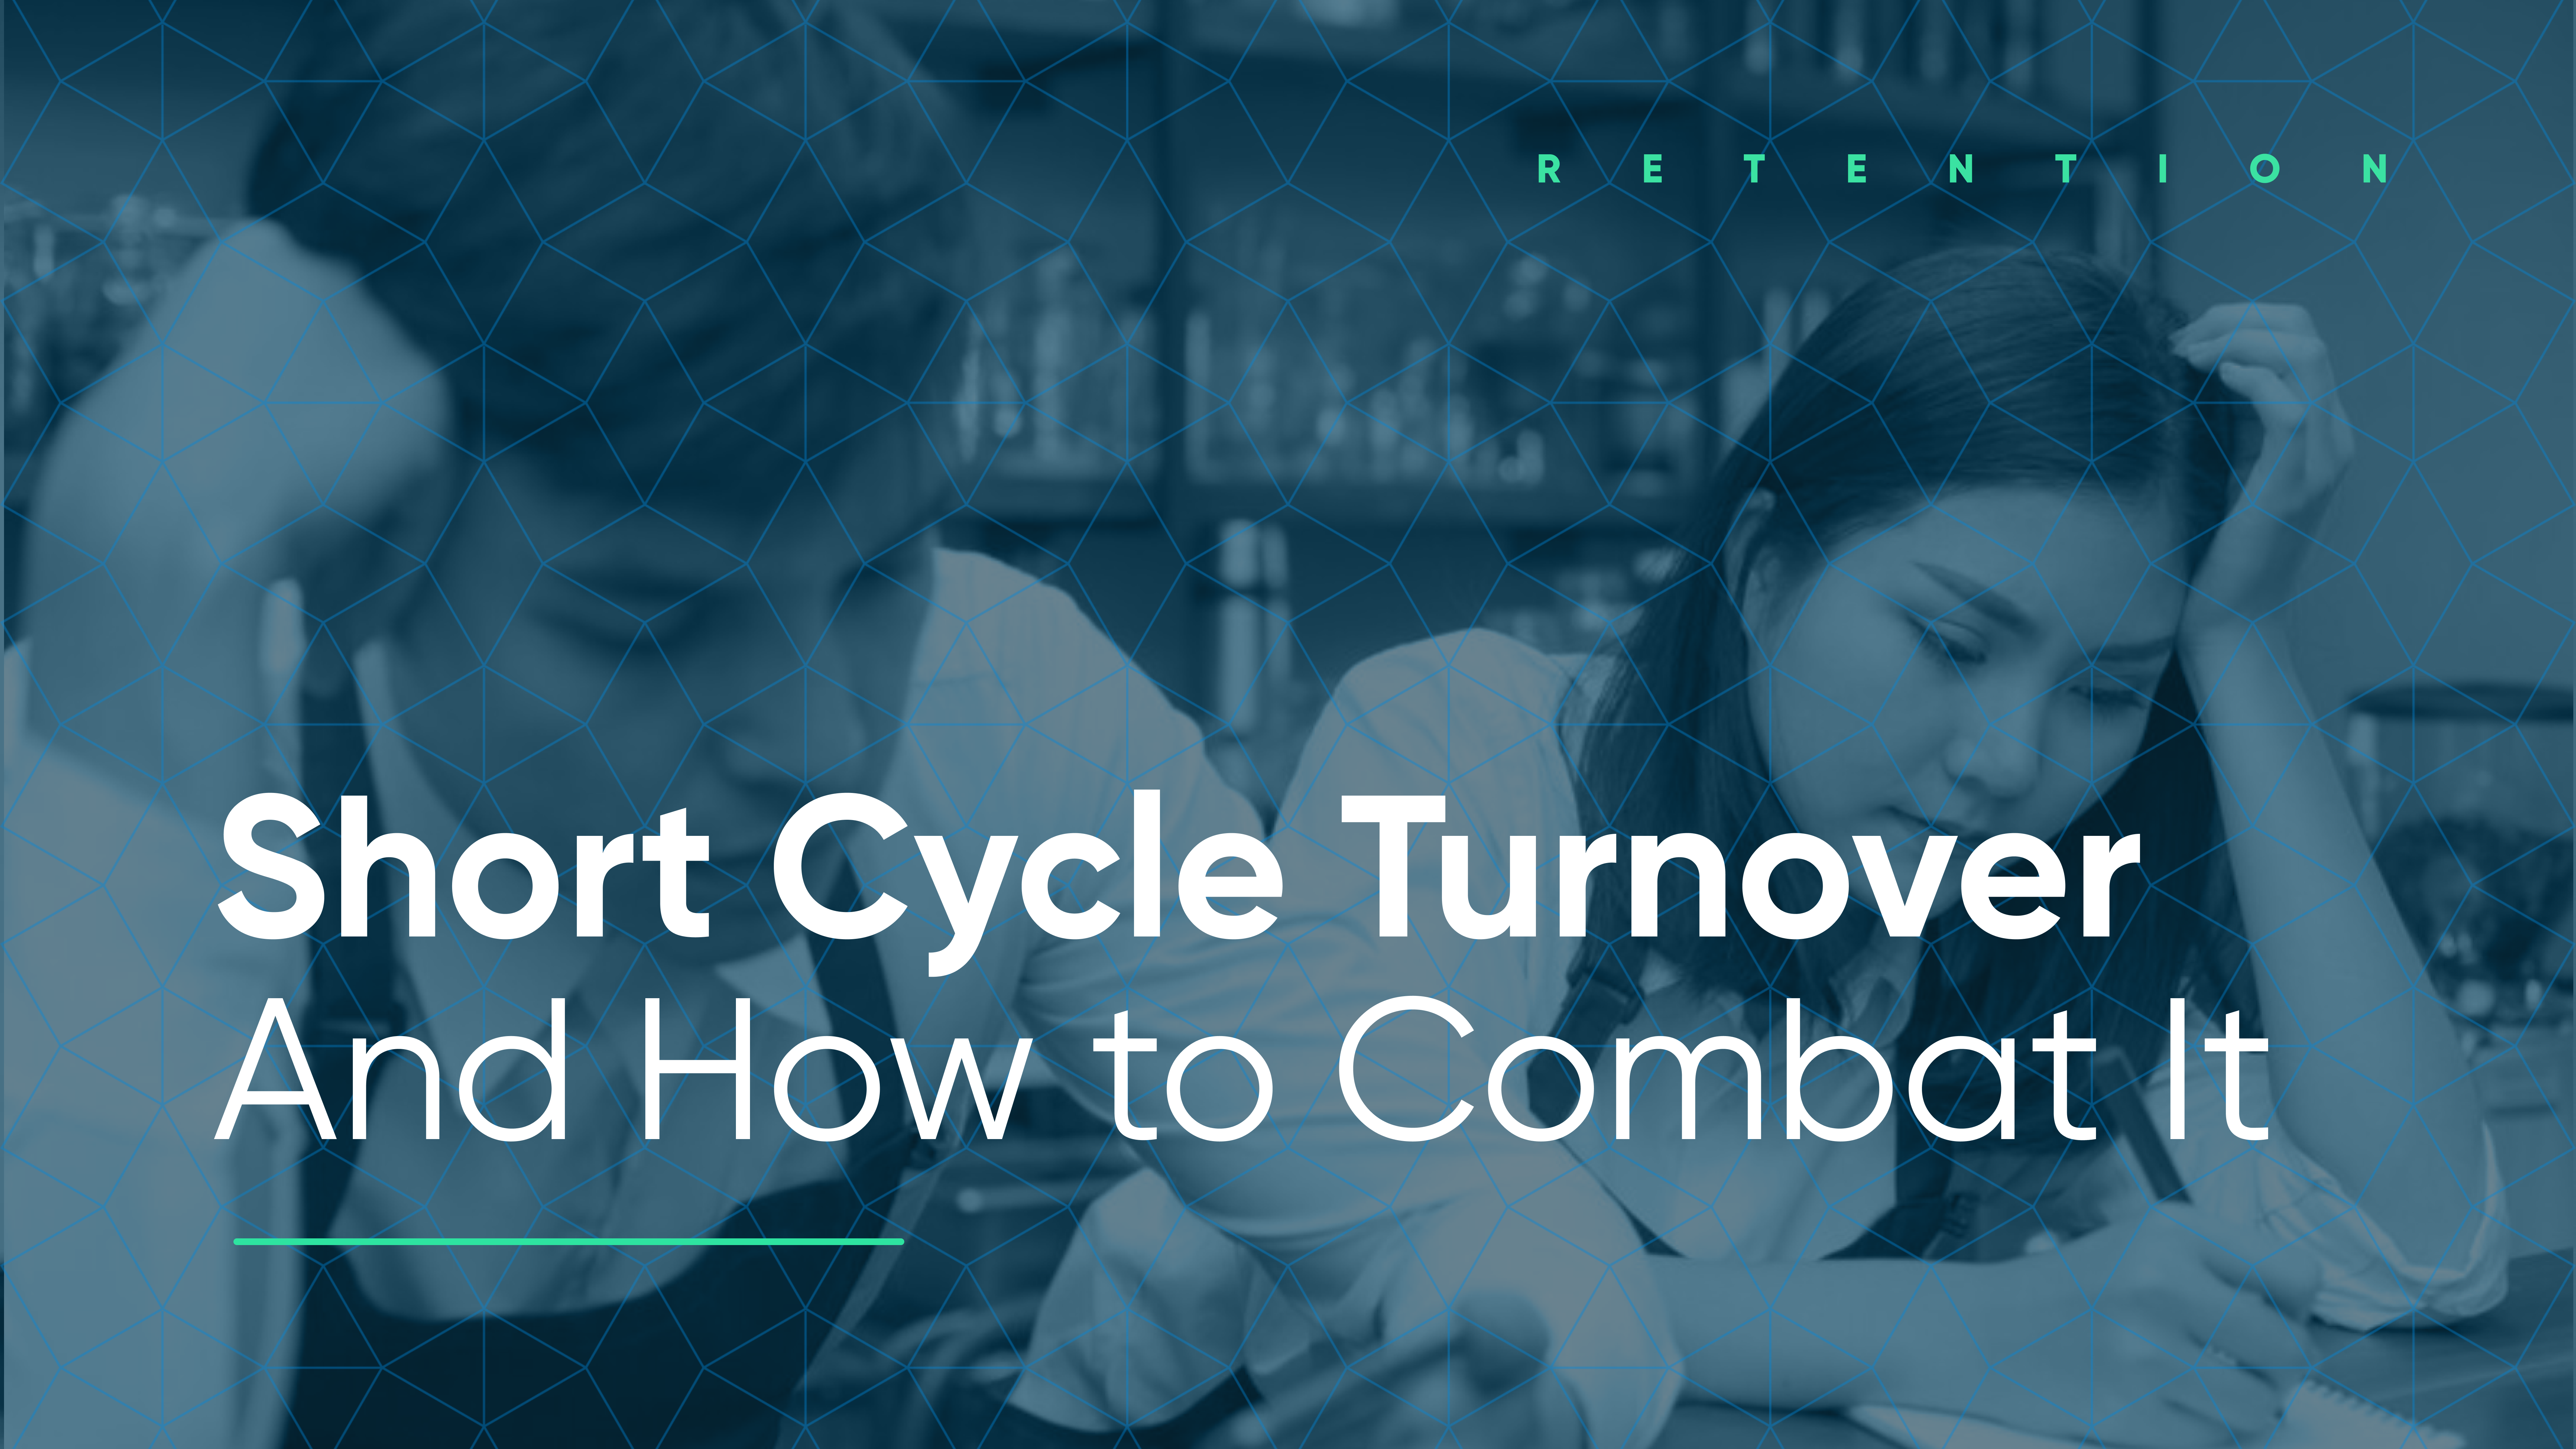 Short Cycle Turnover in hospitality